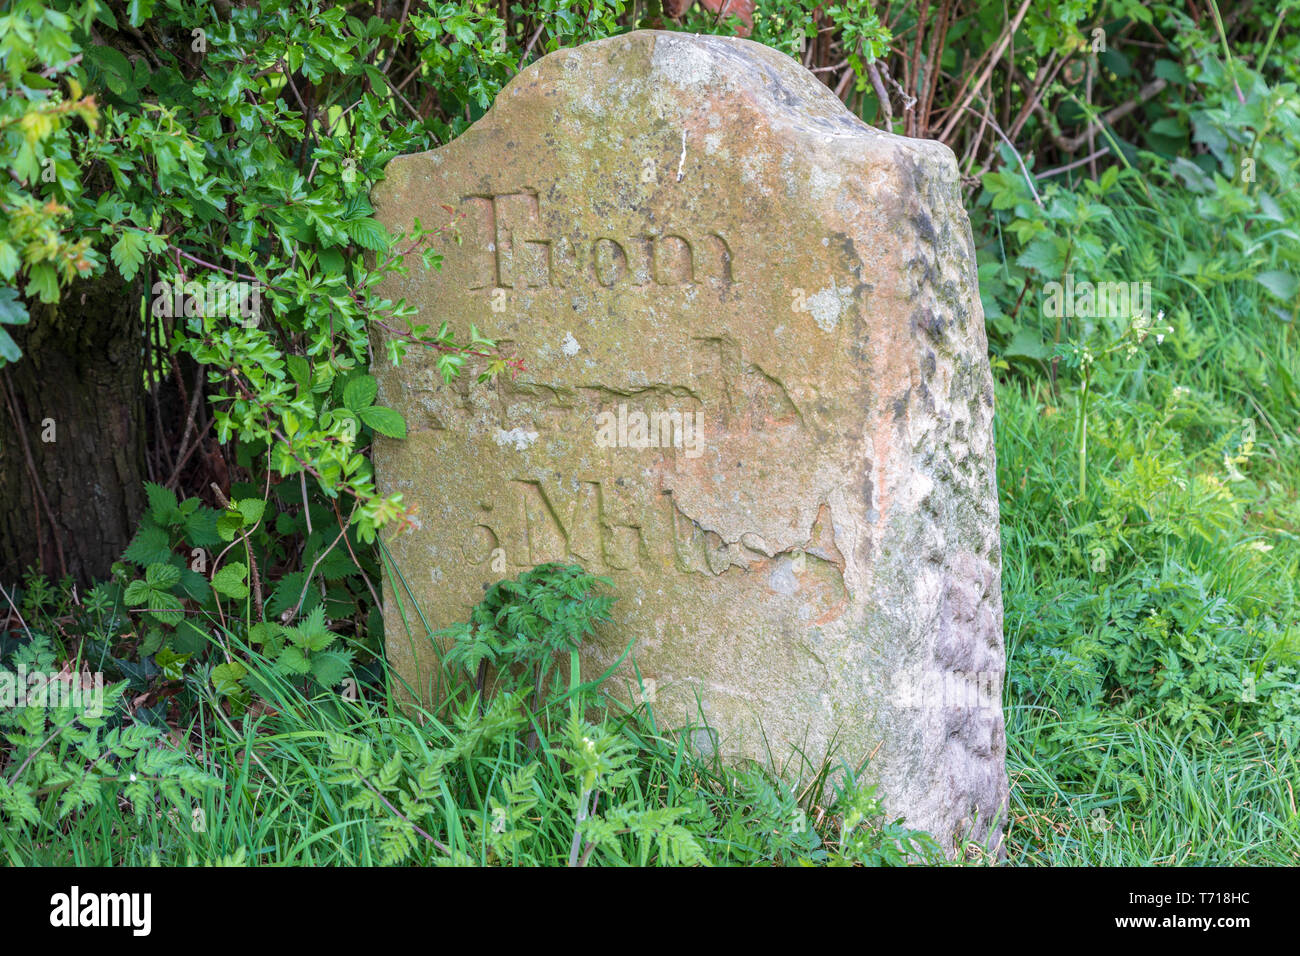 Stone milestone on the Macclesfield canal tow path.  The milestone reads From Marple 5 miles - Stock Image